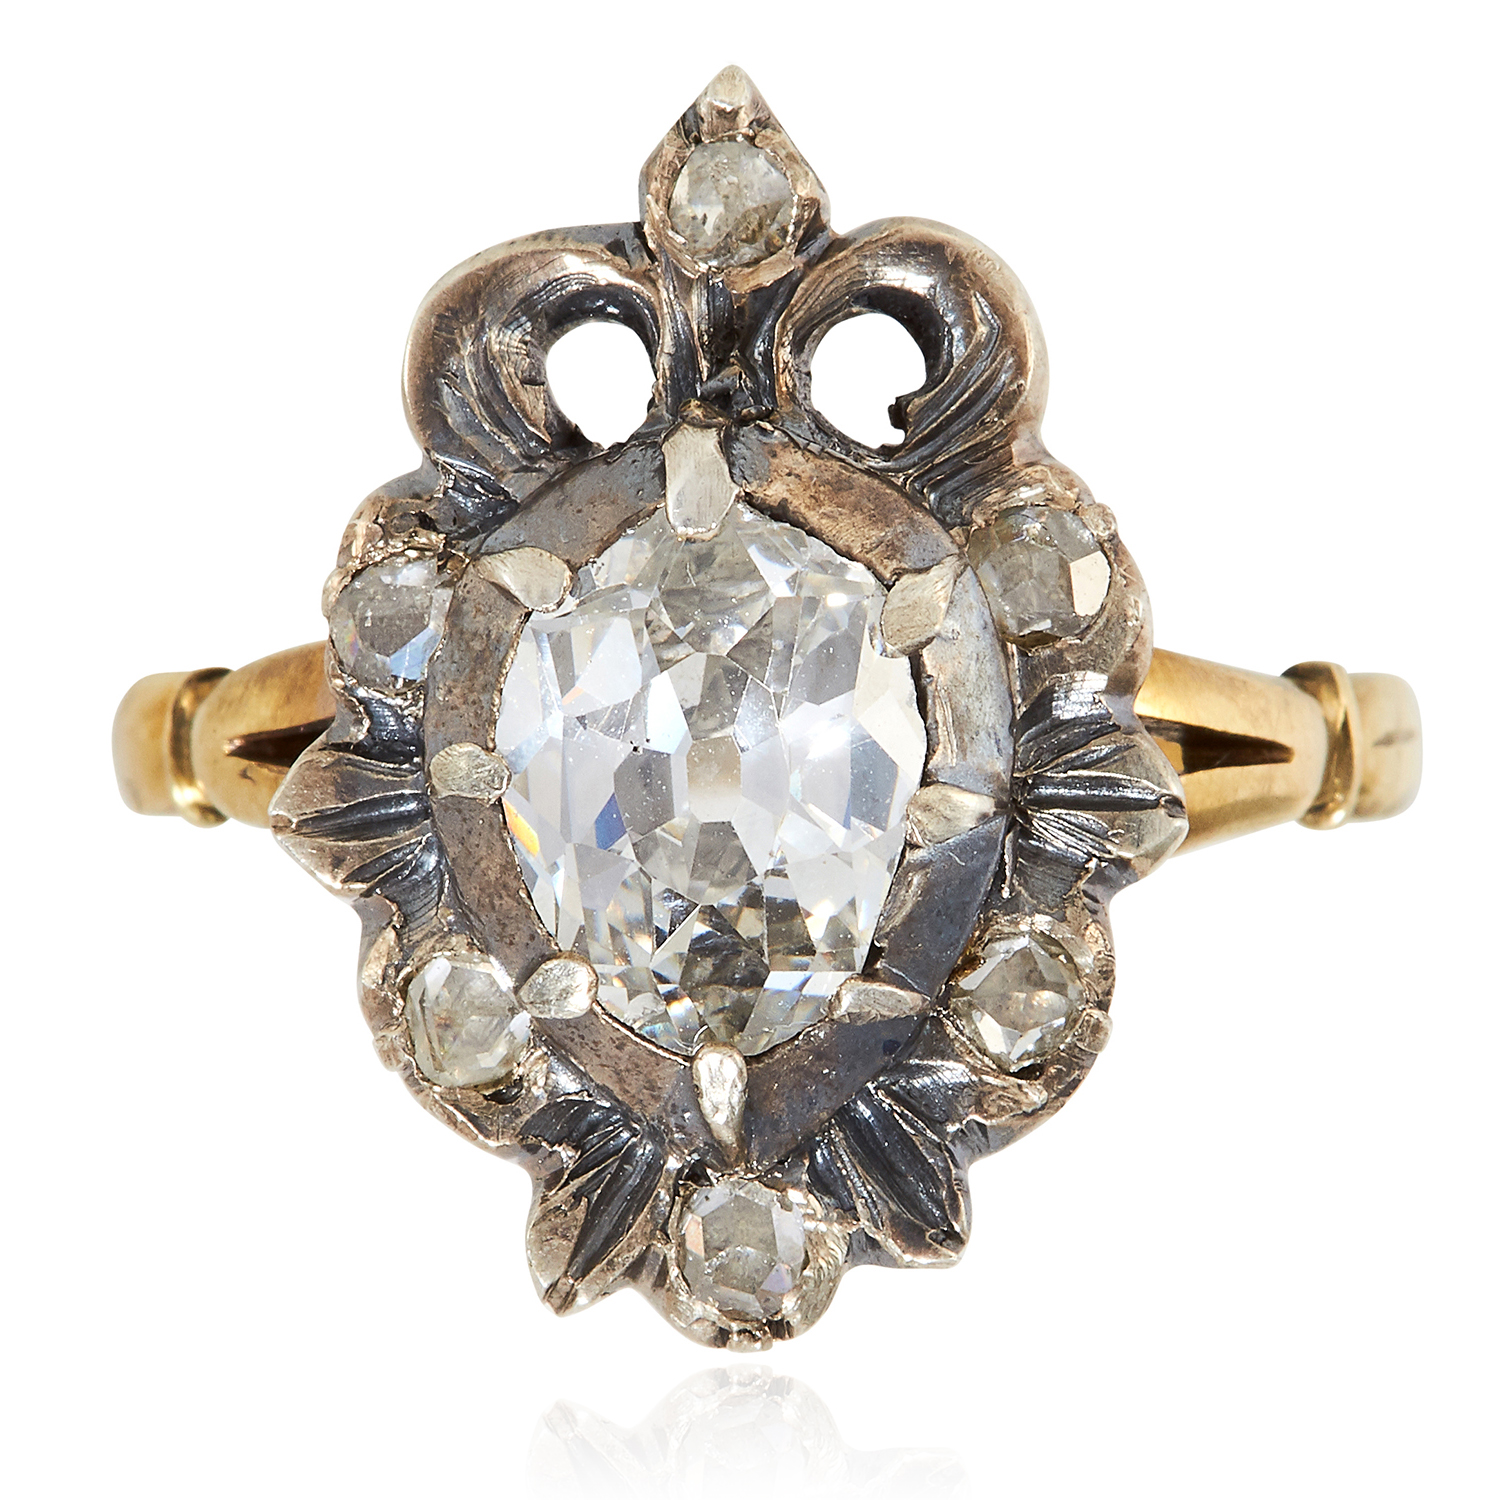 AN ANTIQUE GEORGIAN DIAMOND DRESS RING, 18TH CENTURY in high carat yellow gold, set with an old